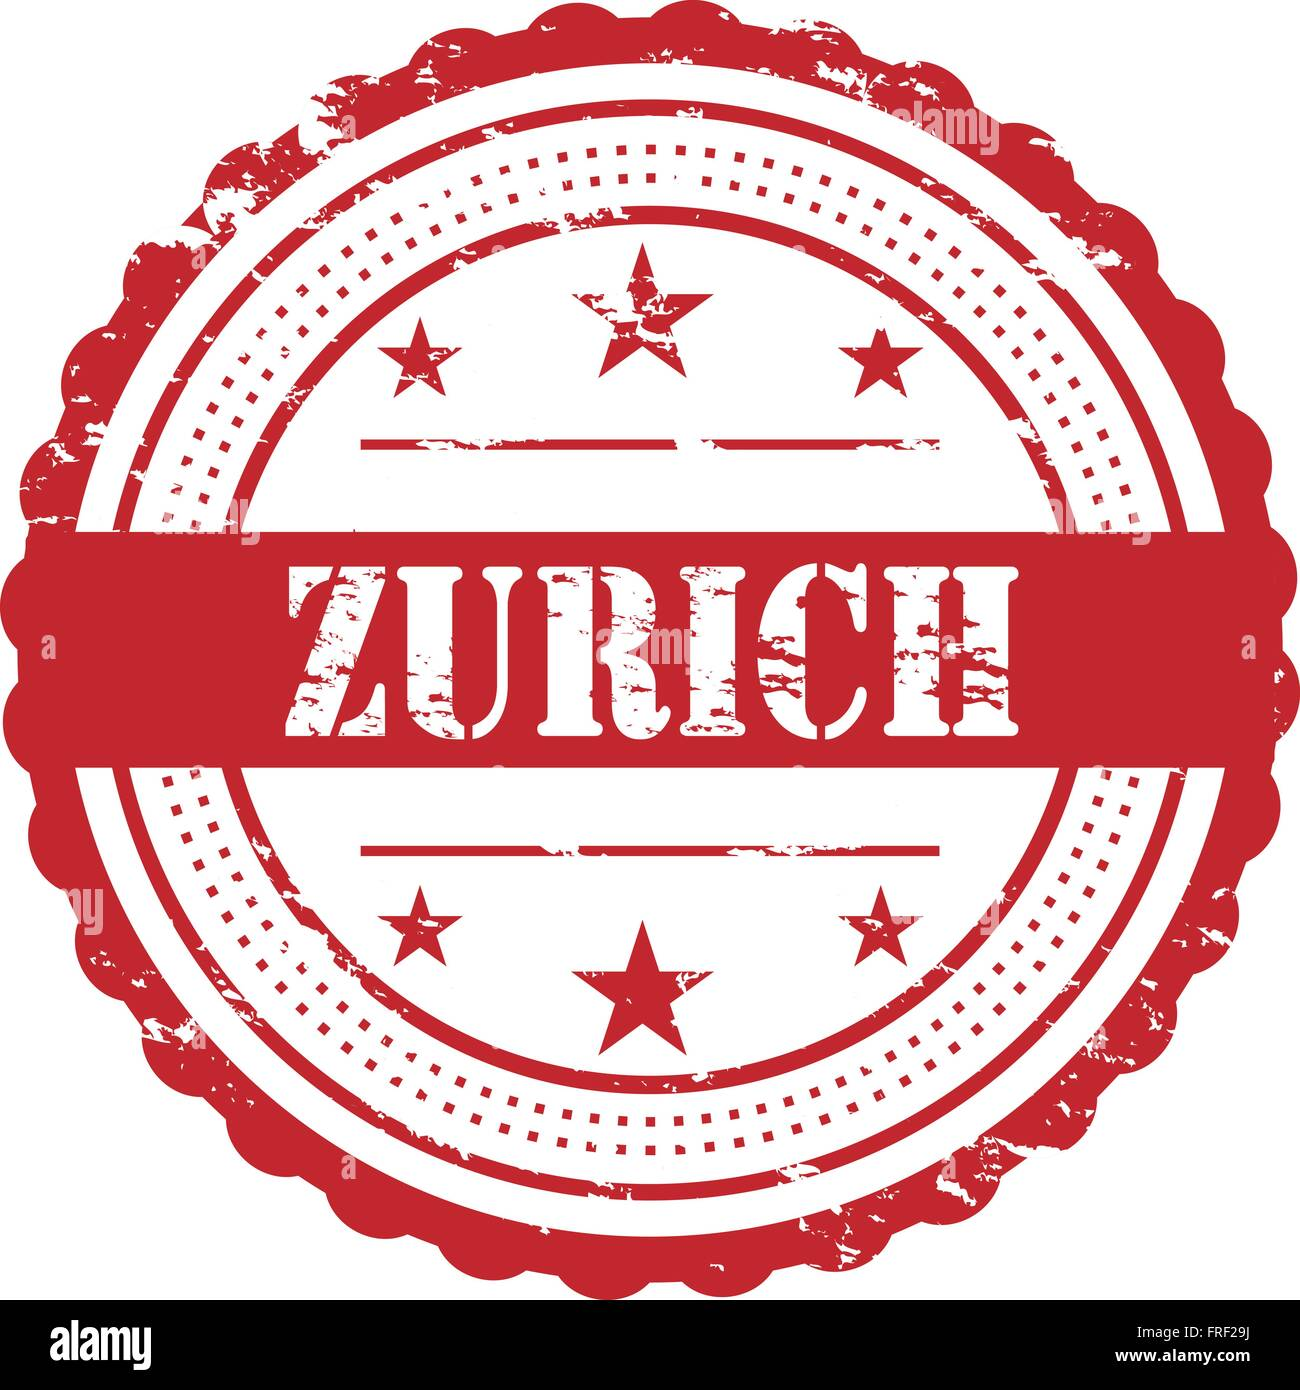 Zurich Destination City Red Stam - Stock Vector